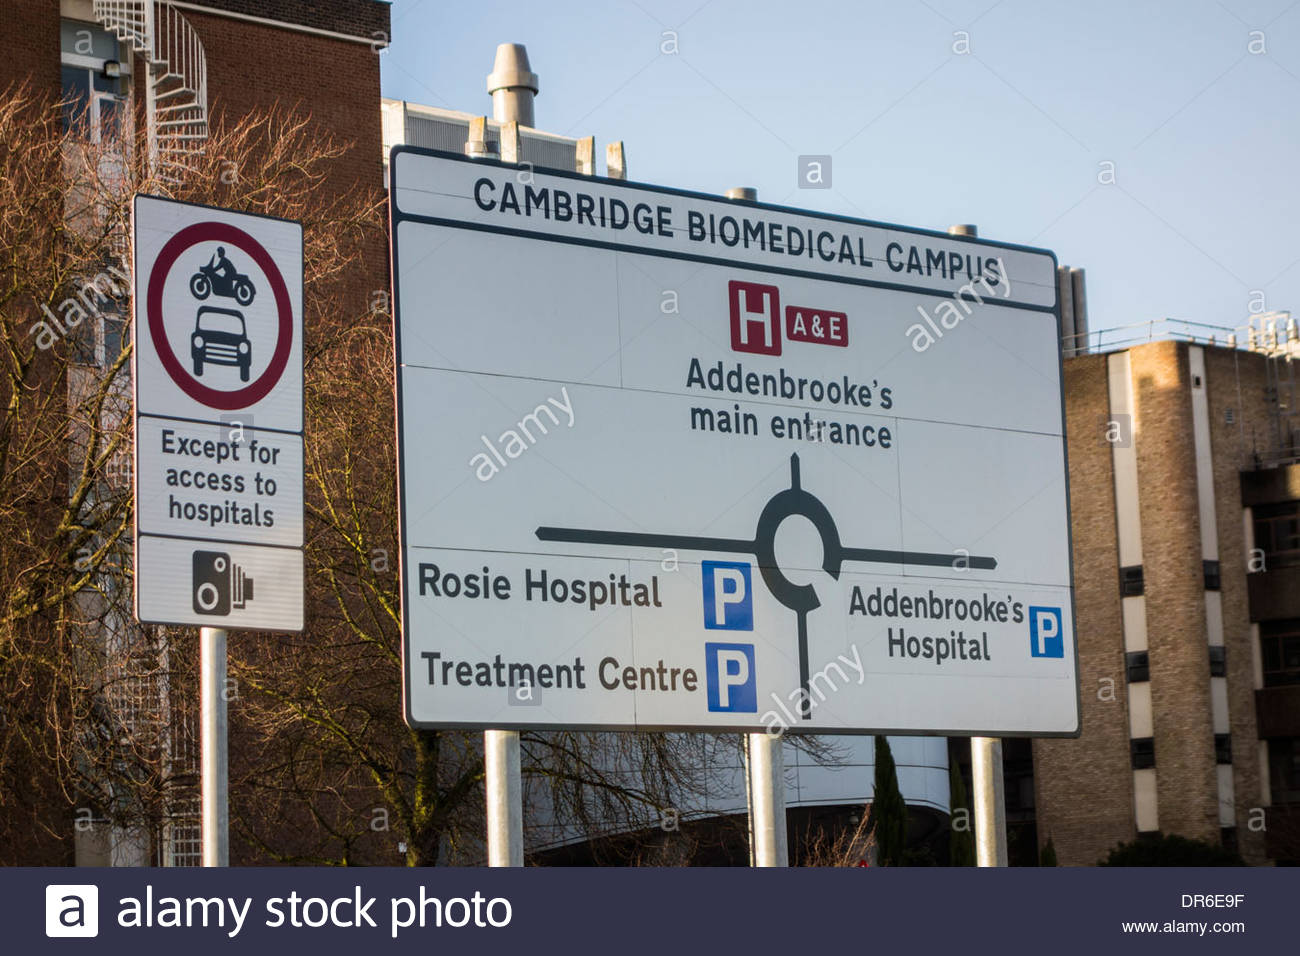 Sign for the Cambridge Biomedical Campus at Addenbrookes Hospital, Cambridge, England, UK - Stock Image